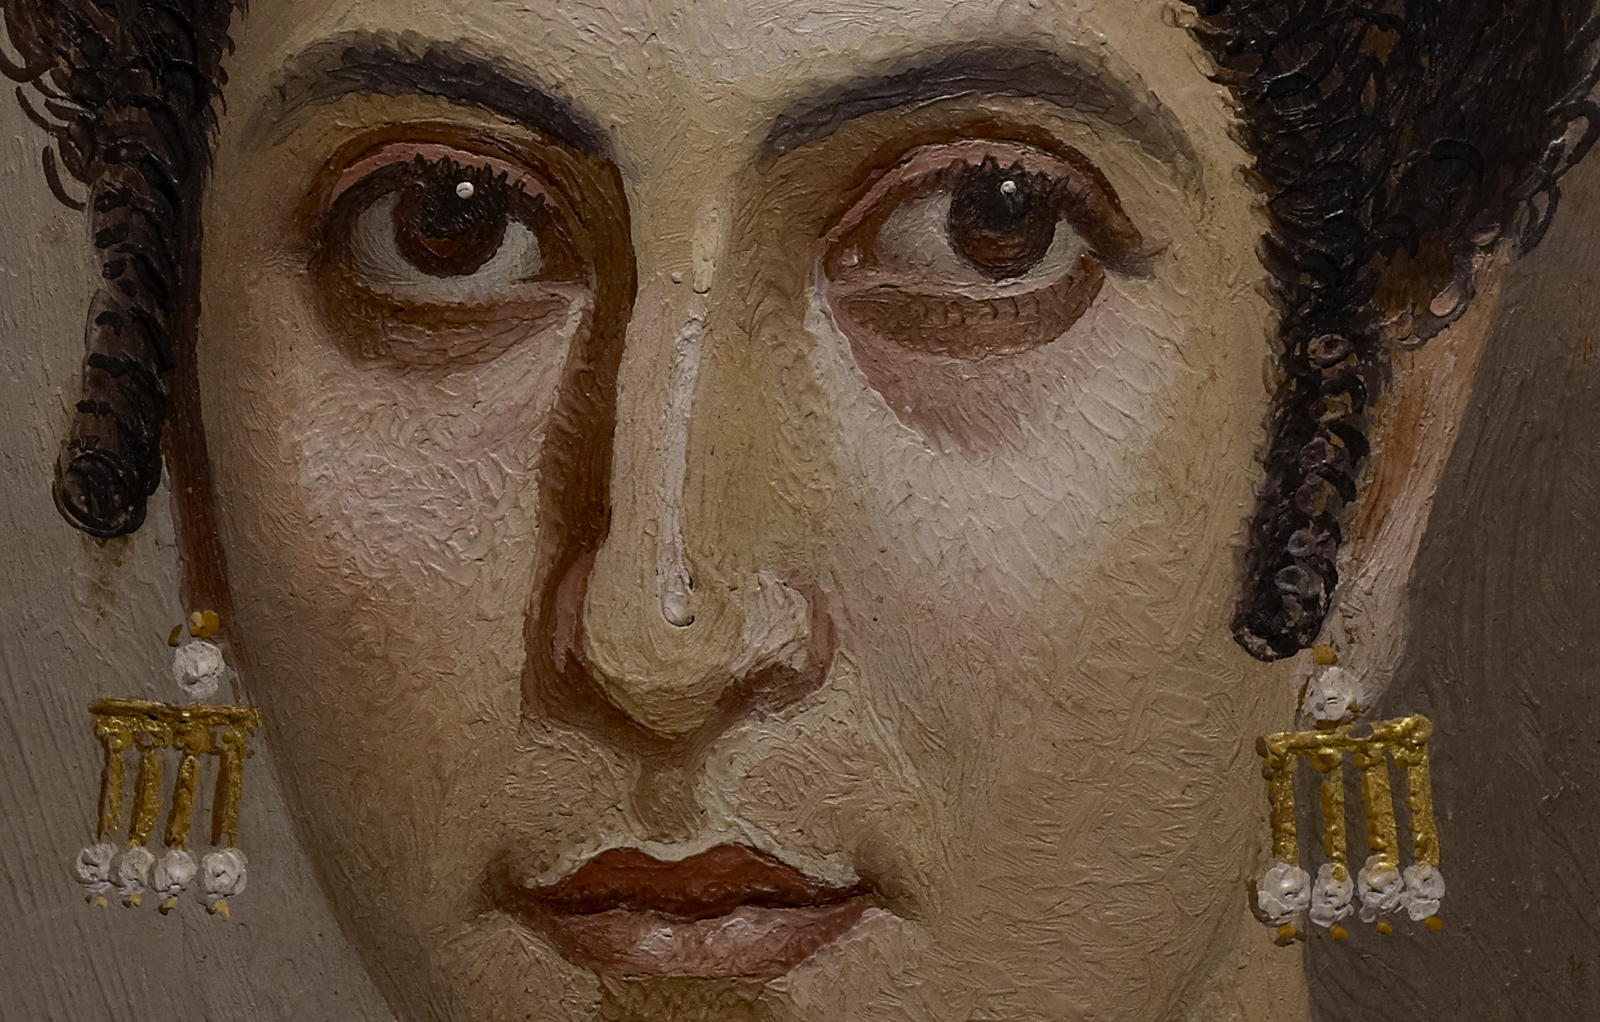 A close up of a mummy portrait featuring a woman with gold jewelry.